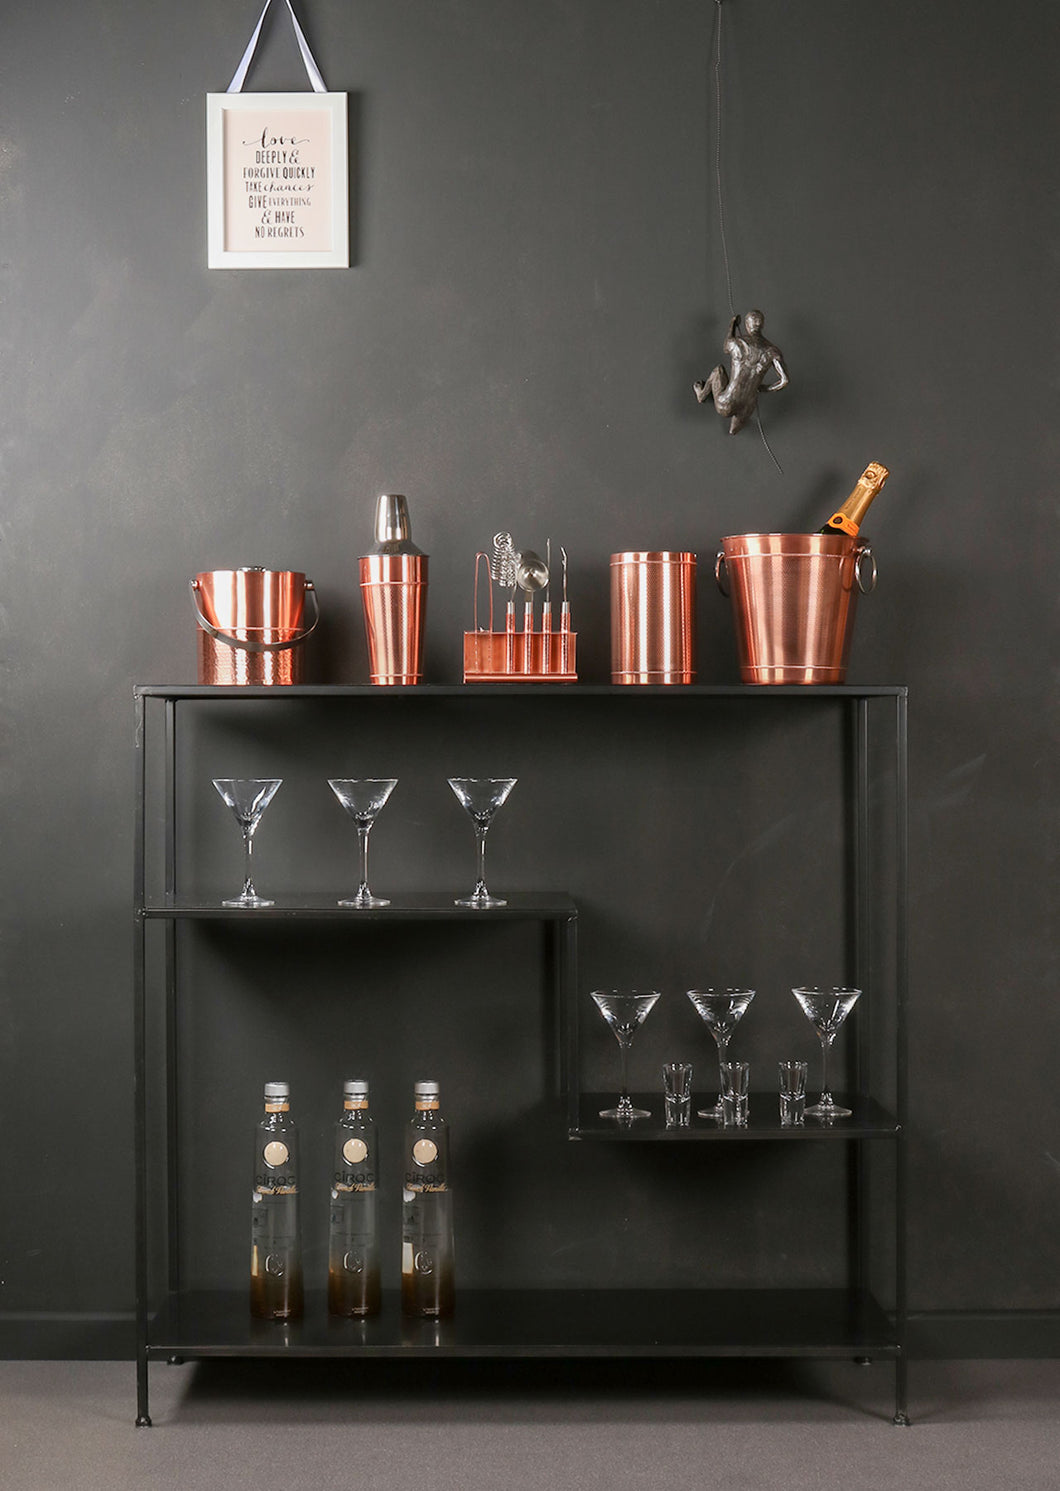 Complete Copper set of Cocktail Making Kit and Accessories Bottle Cooler and Champagne Bucket and Cocktail Shaker - Whaleycorn